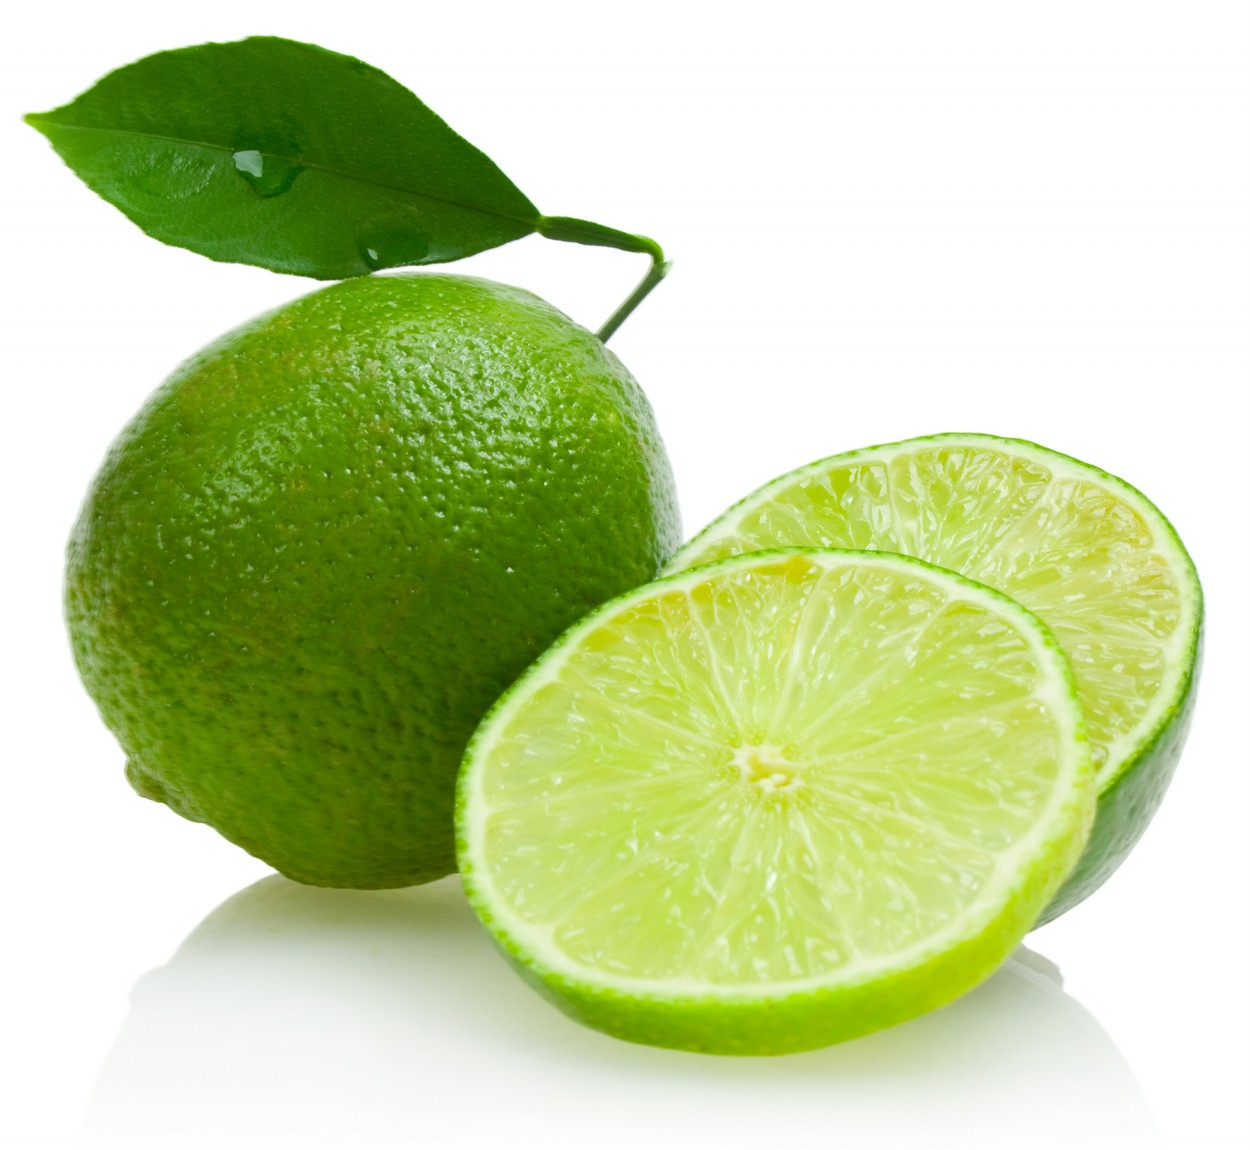 High Resolution Wallpaper   Lime 1250x1150 px